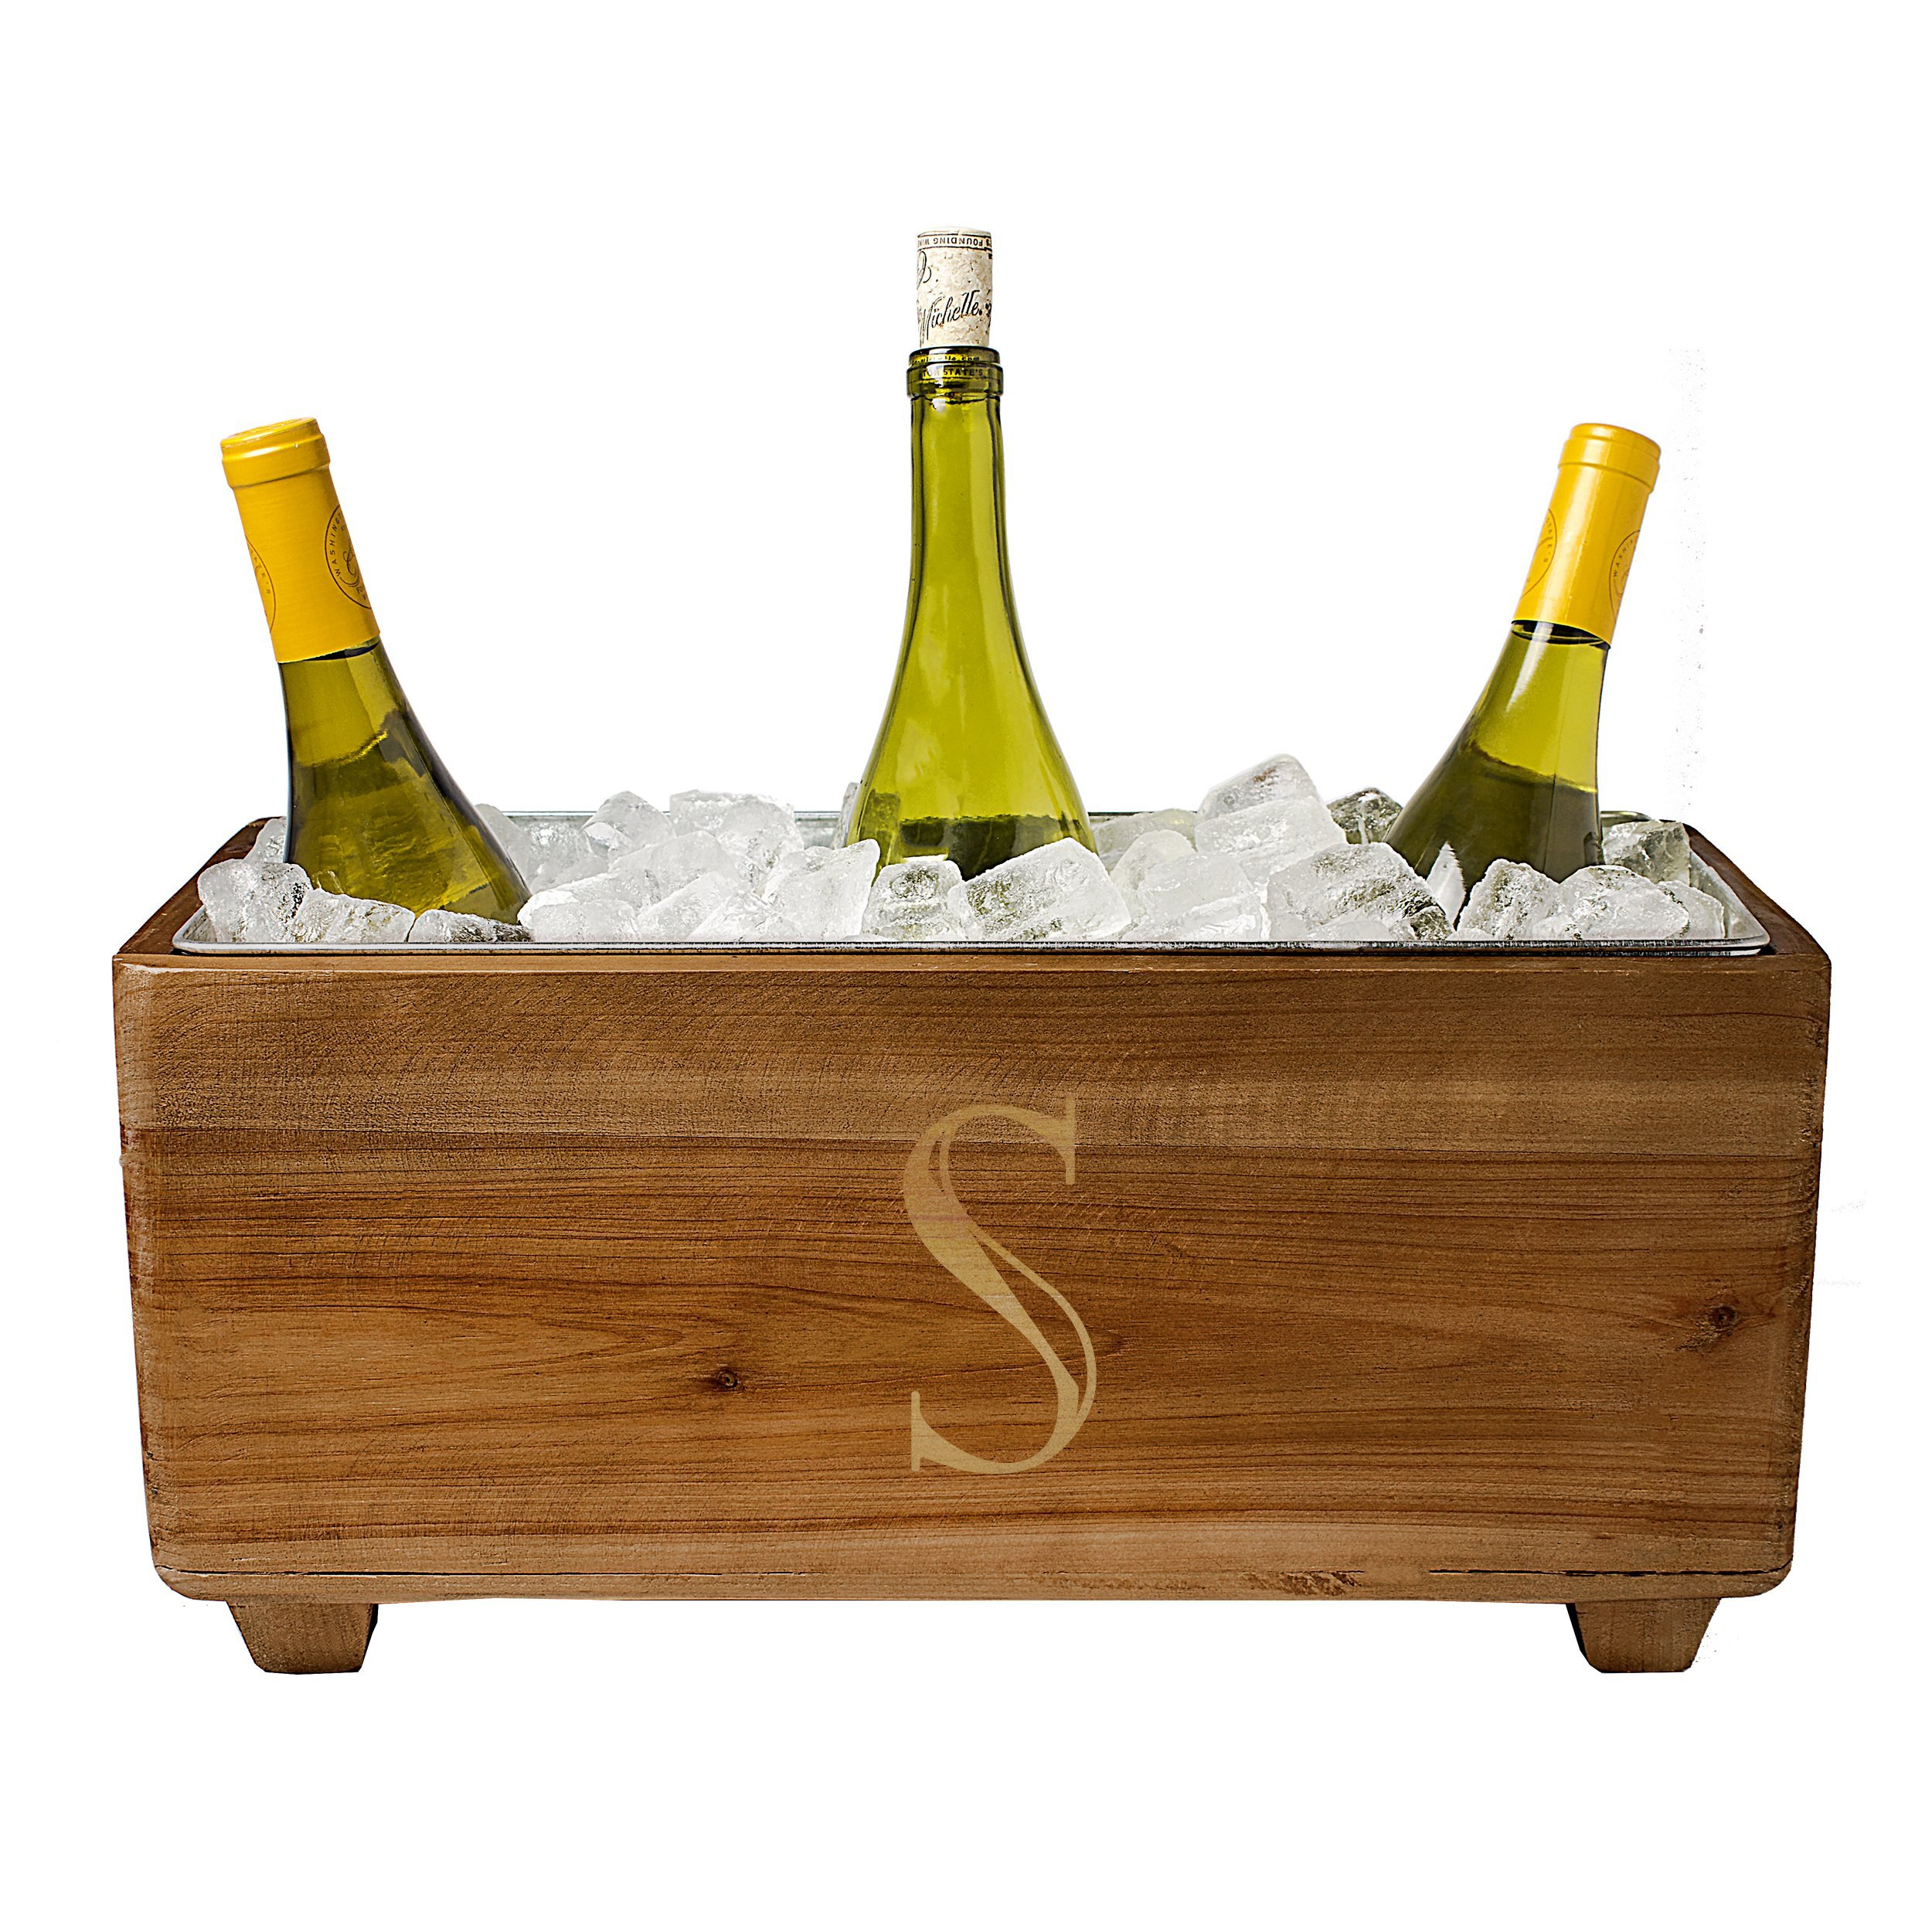 Cathy's Concepts Personalized Wooden Wine Trough, Letter S by Cathy's Concepts (Image #2)